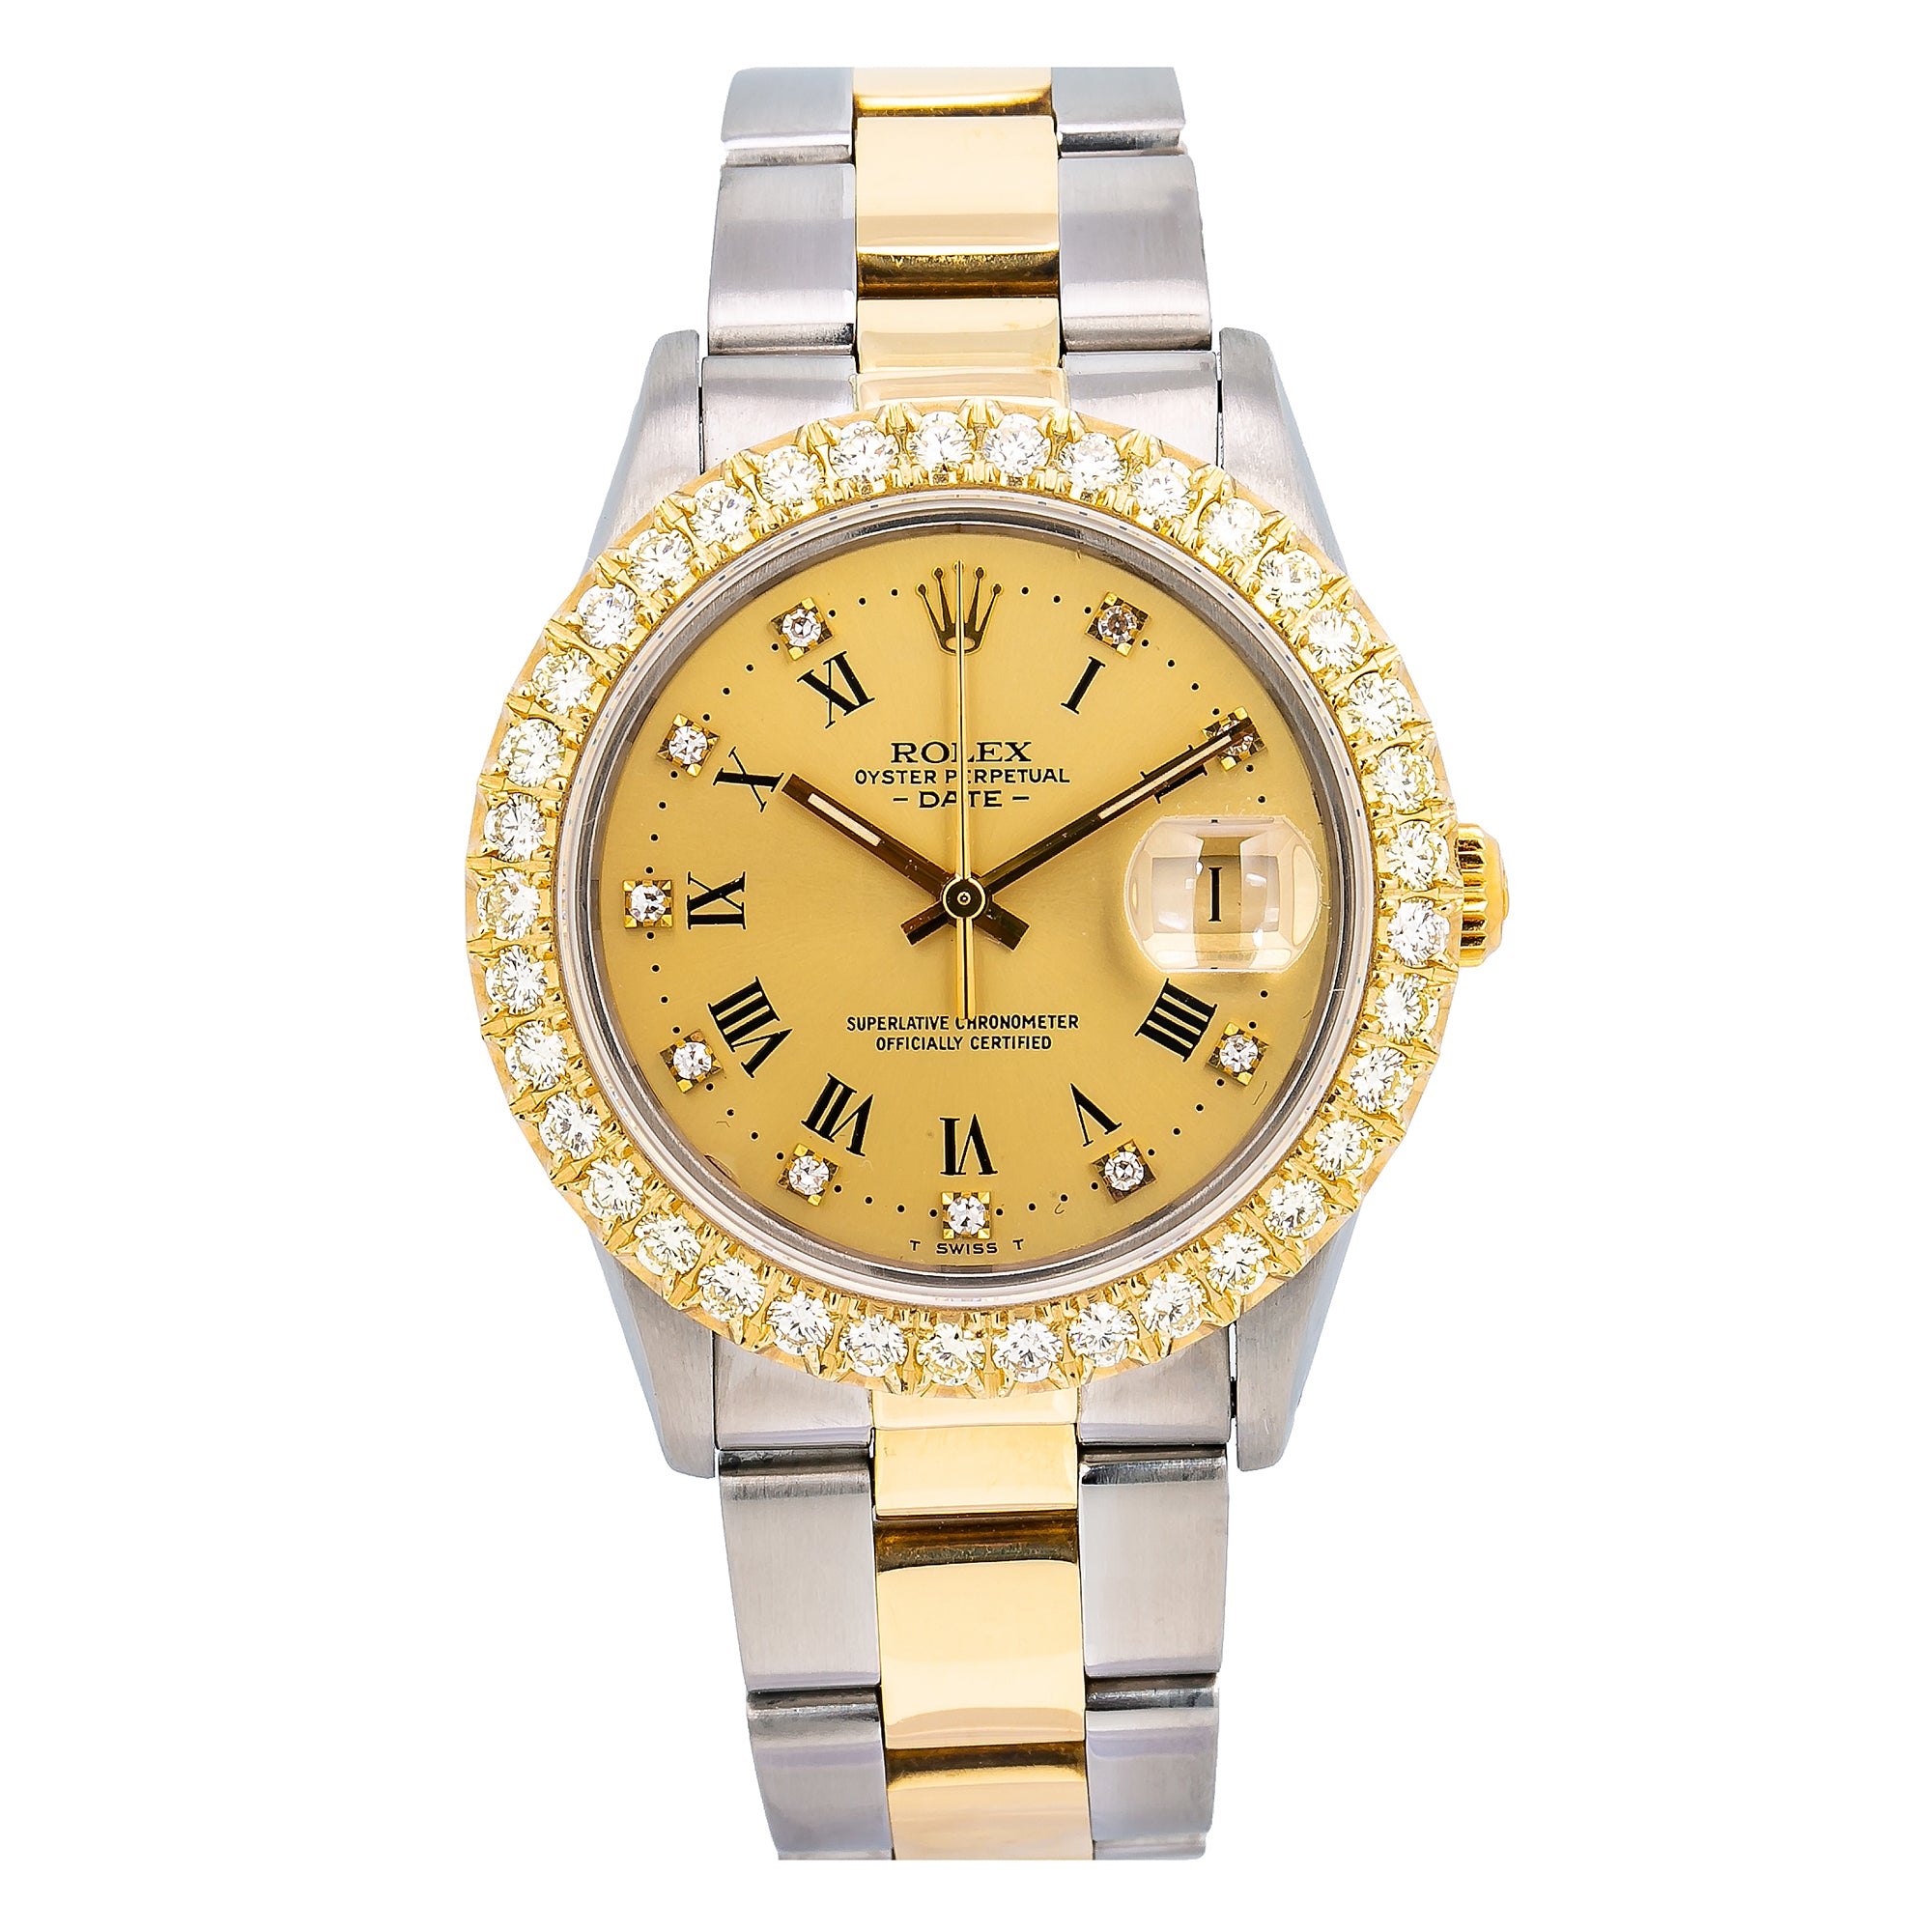 Rolex Oyster Perpetual Date 1500 34MM Champagne Diamond Dial With Two Tone Oyster Bracelet